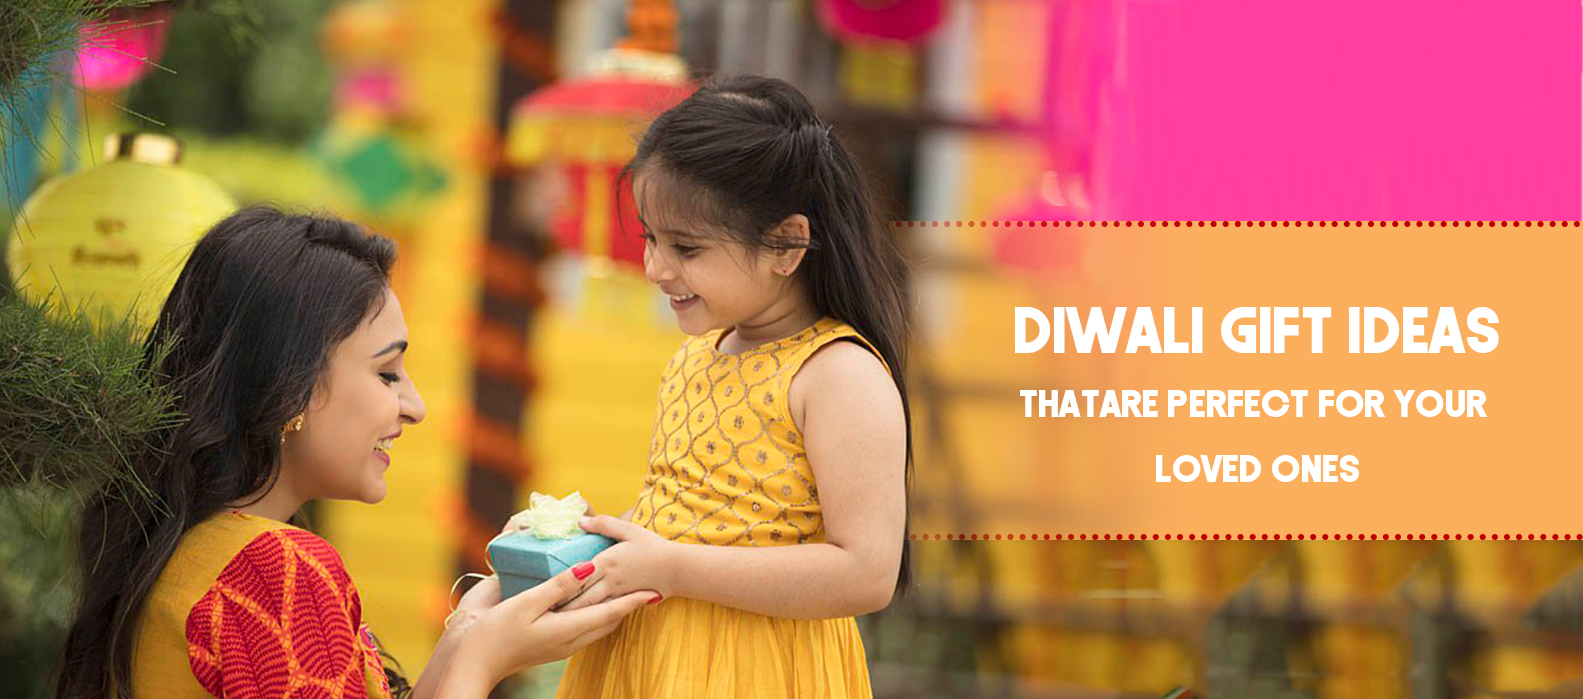 Diwali Gift Ideas For Your Loved Ones